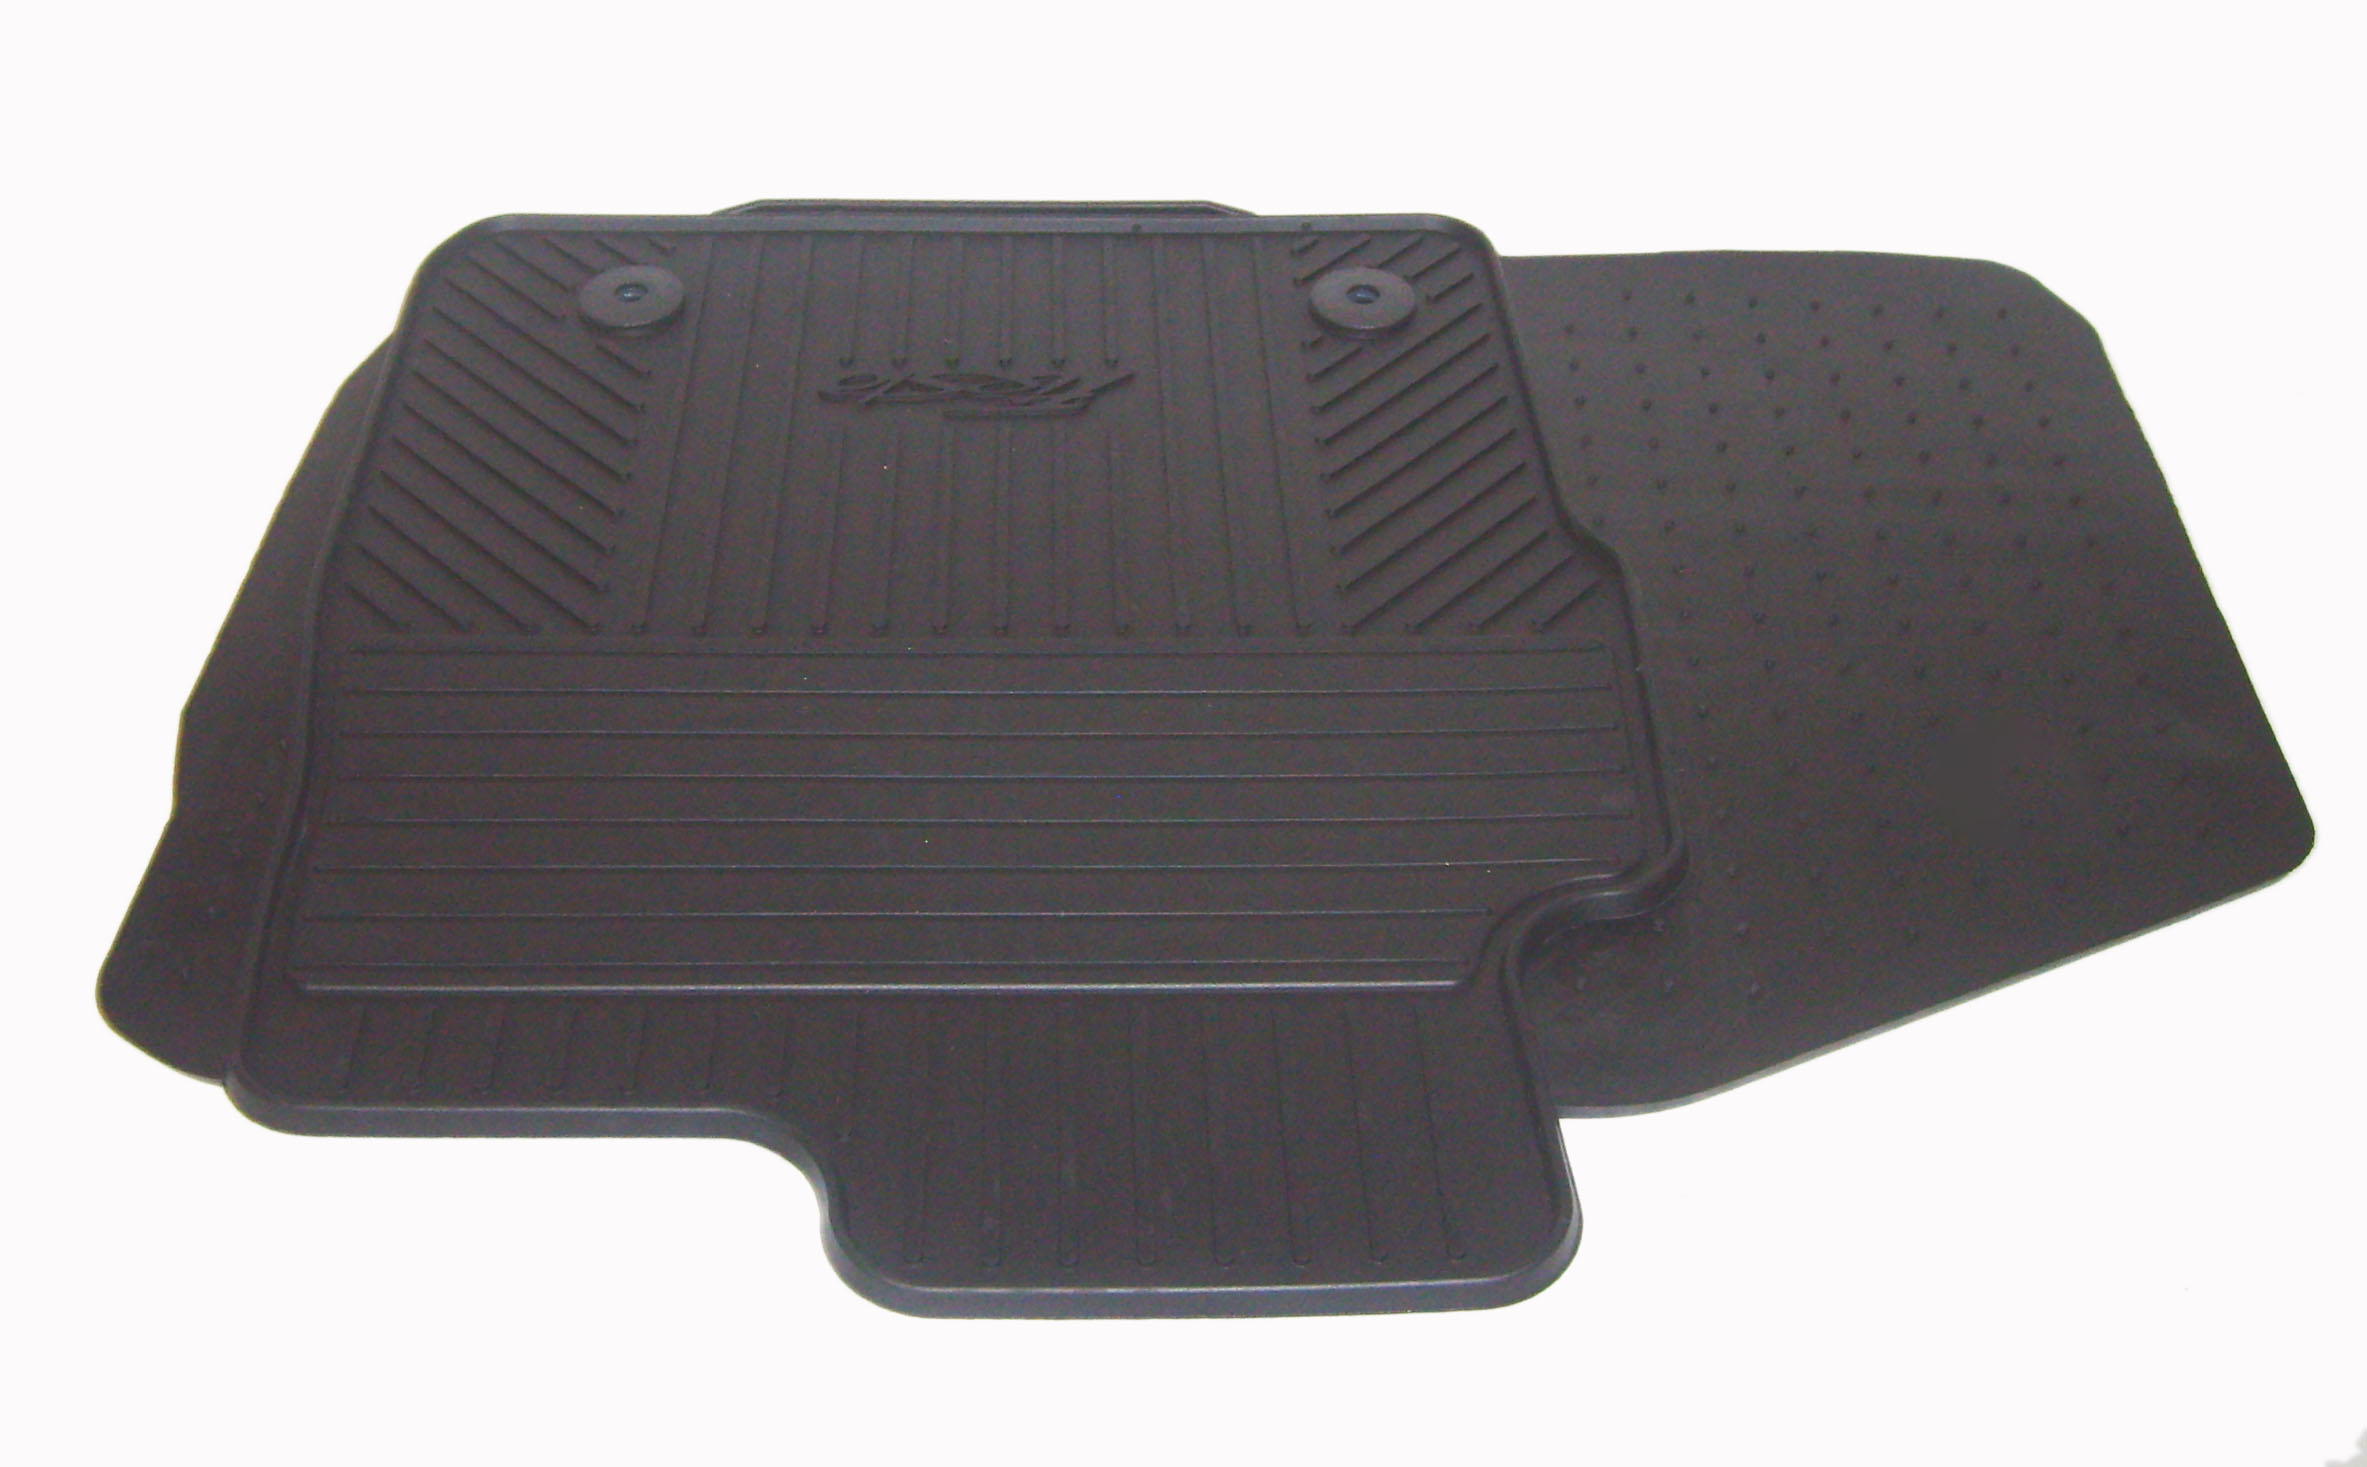 New Genuine Ford Fiesta Front Rubber Floor Mats 2011